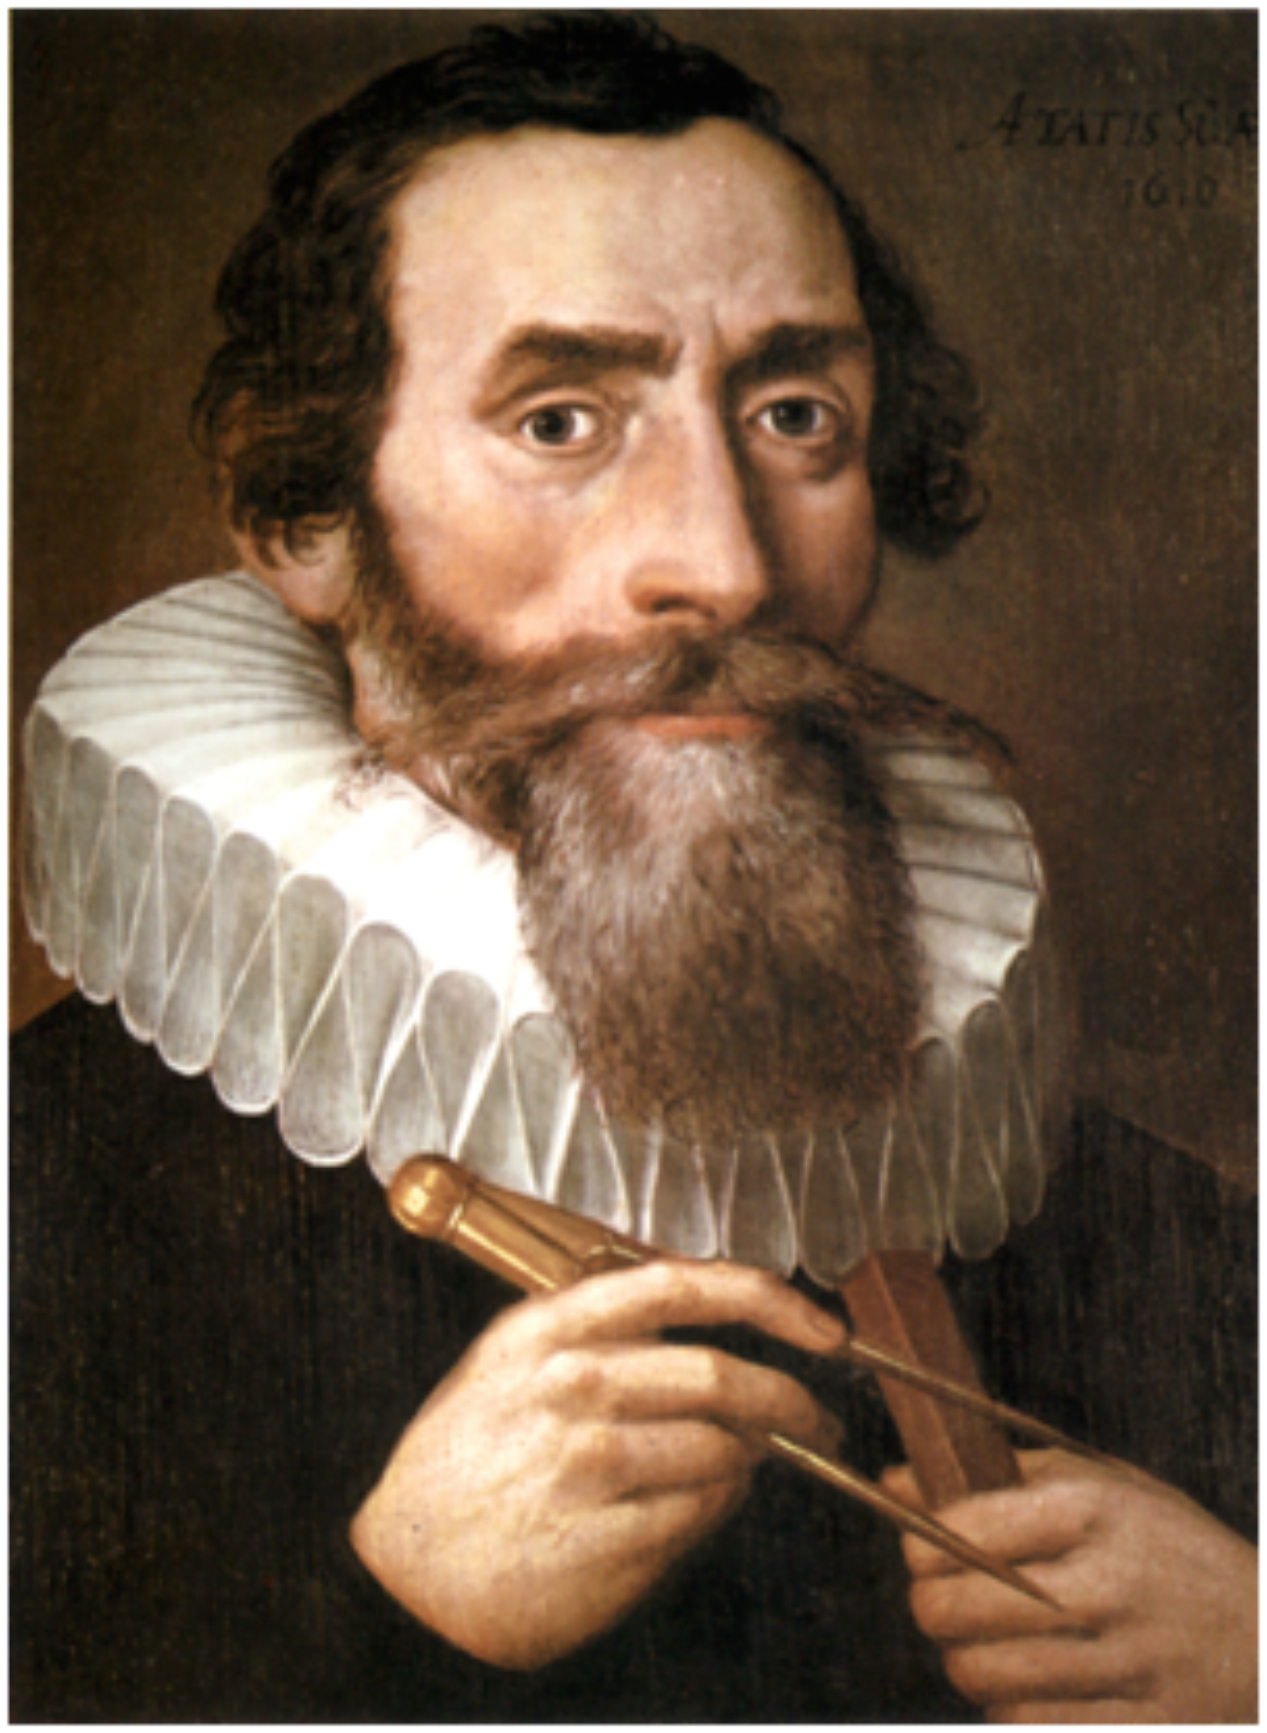 Johannes Kepler 1571 -1630.    Painted by an unknown painter in 1610.  Copy of a lost original from 1610 in the Benedictine monastery in Kremsmünster   PD-Art    Kepler was a German mathematician and optician,known for hislaws of planetary motion, based on his worksAstronomia nova,Harmonices Mundi, andEpitome of Copernican Astronomy. These works also provided one of the foundations forIsaac Newton's theory ofuniversal gravitation.